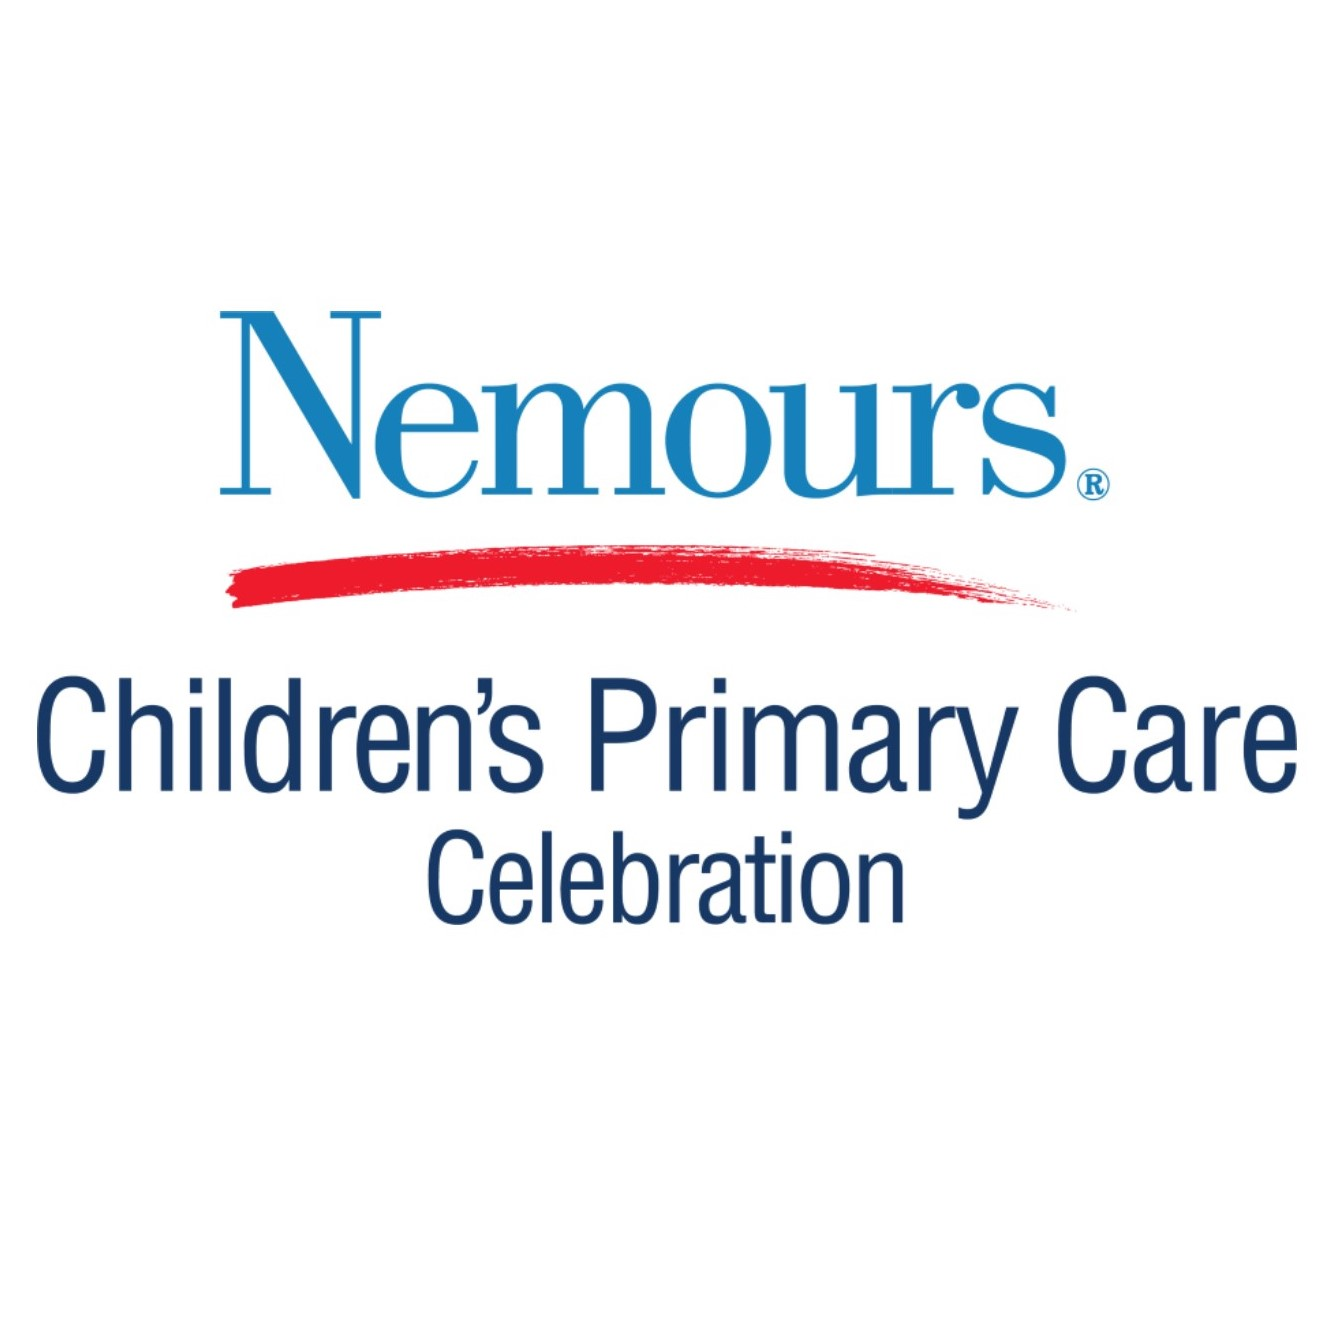 Nemours Childrens Primary Care